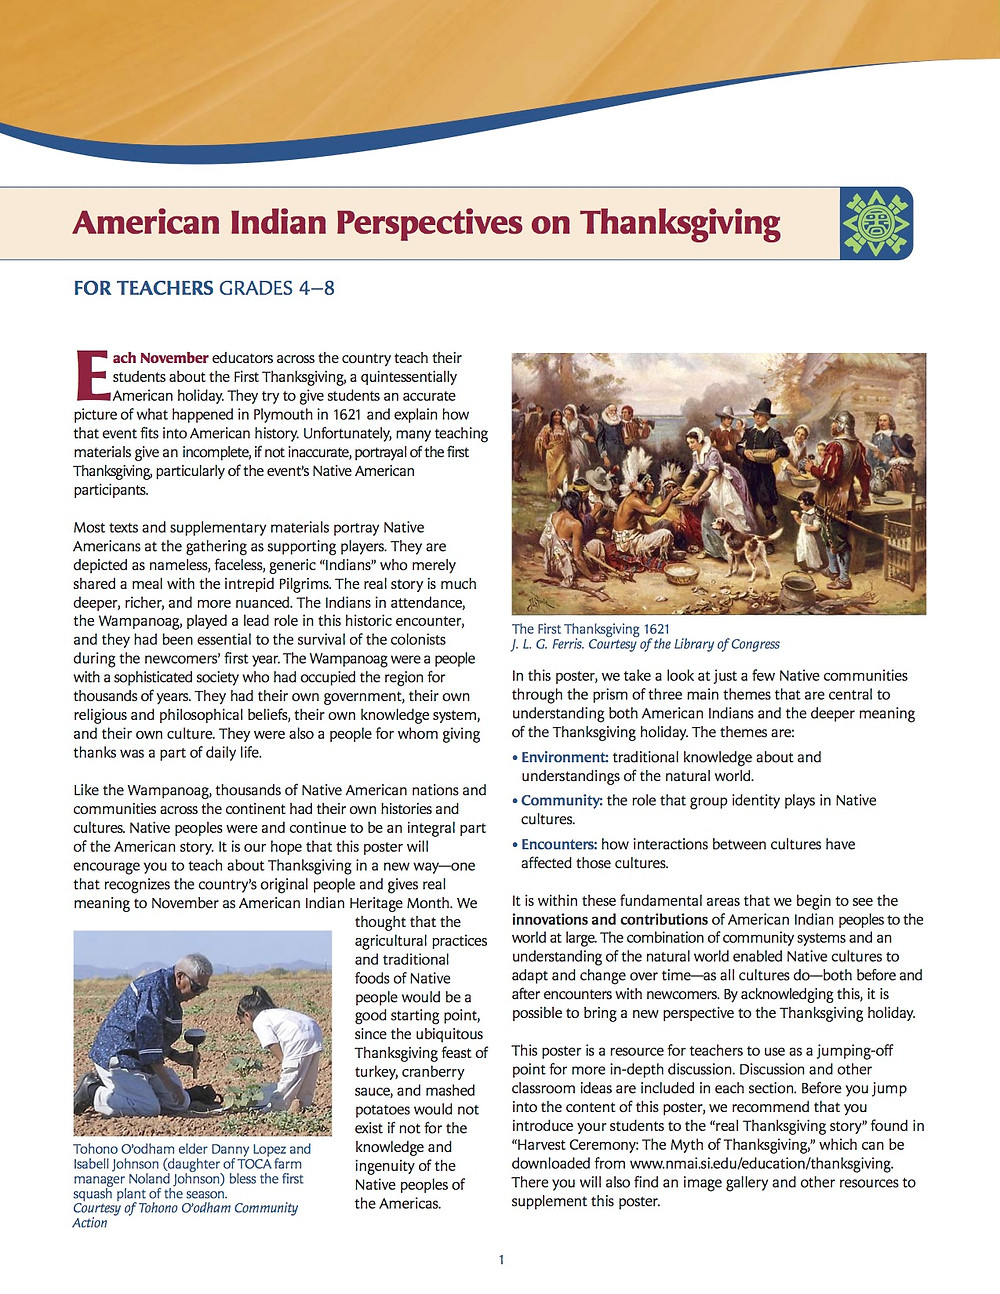 American Indian Perspectives on Thanksgiving poster page 2